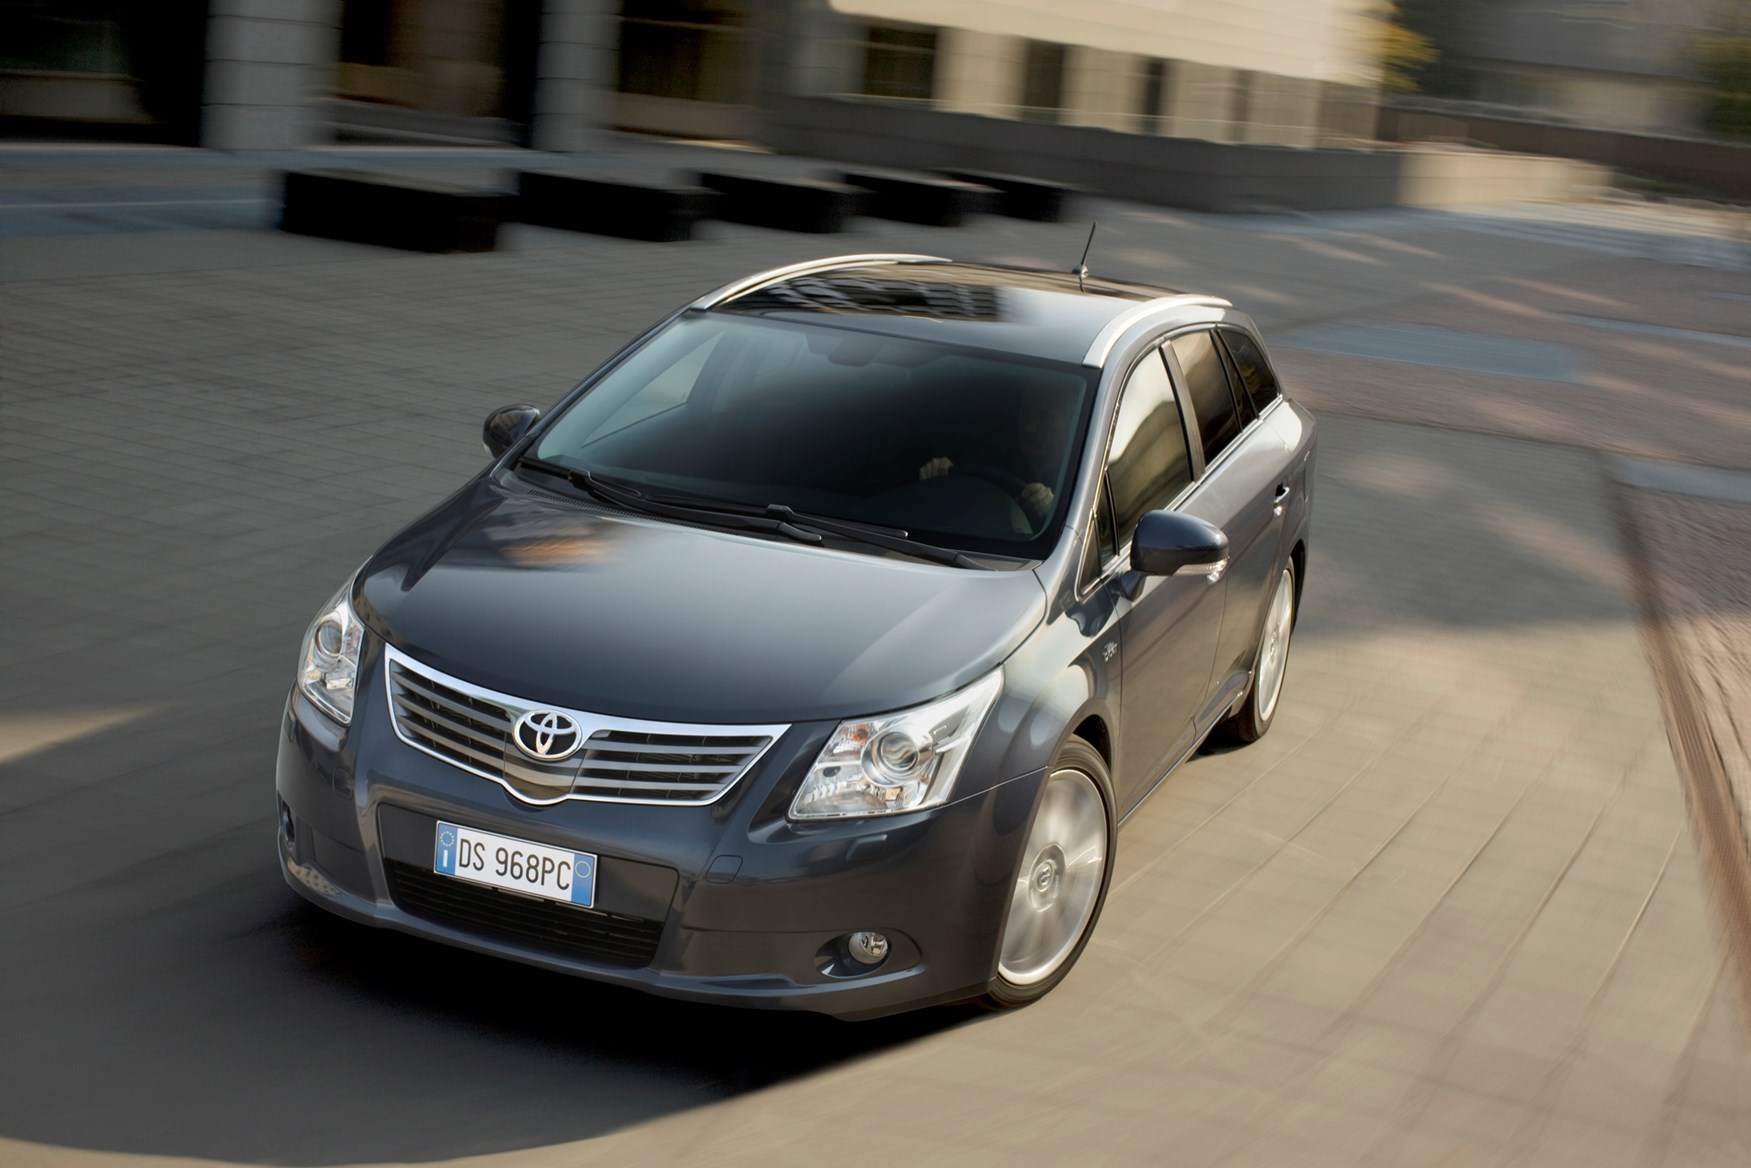 toyota avensis tourer review (2009 - 2015) | parkers